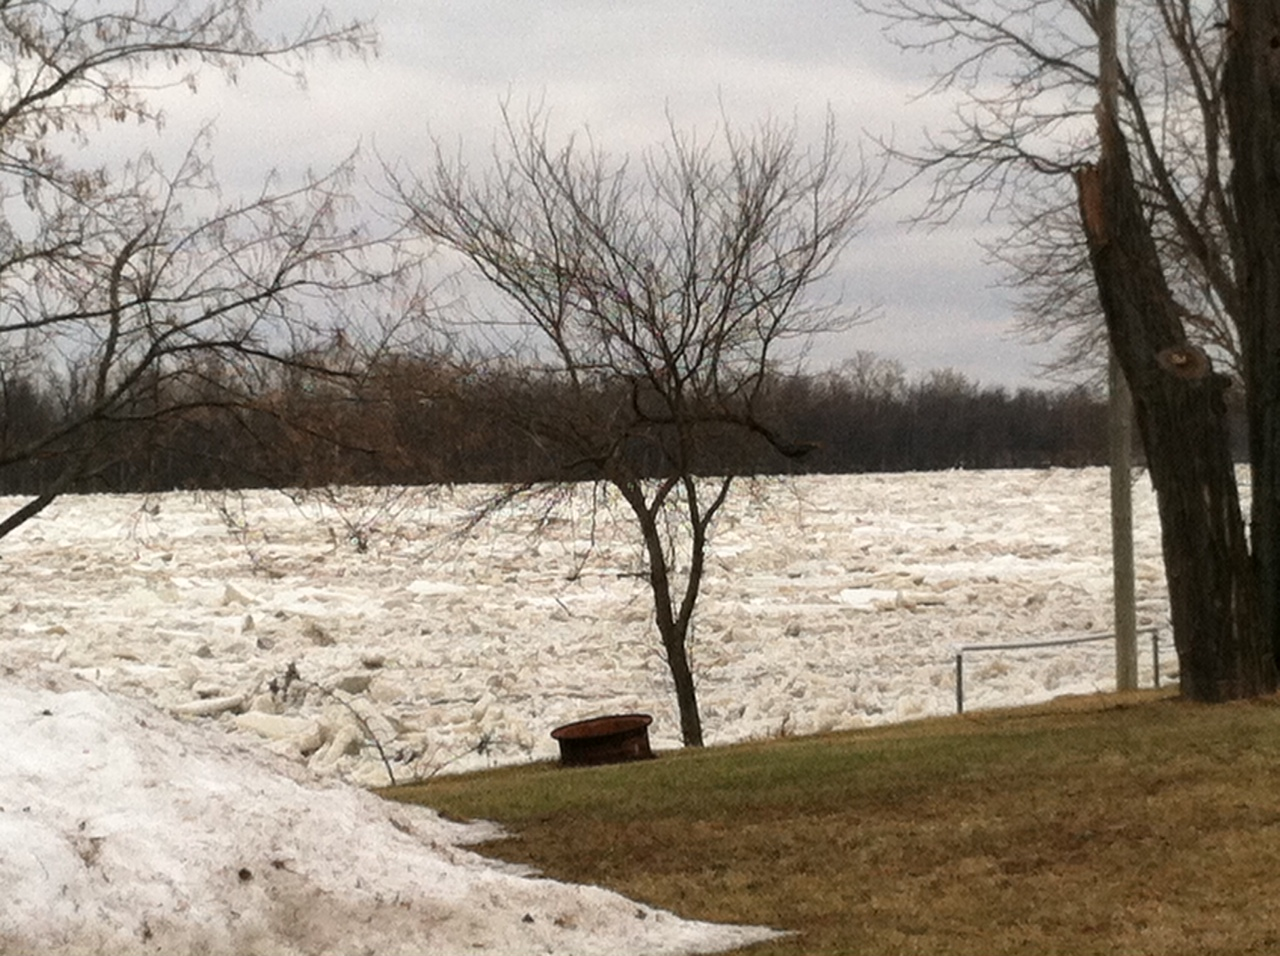 ice jam along the Maumee River a few miles upstream of Grand Rapids, OH